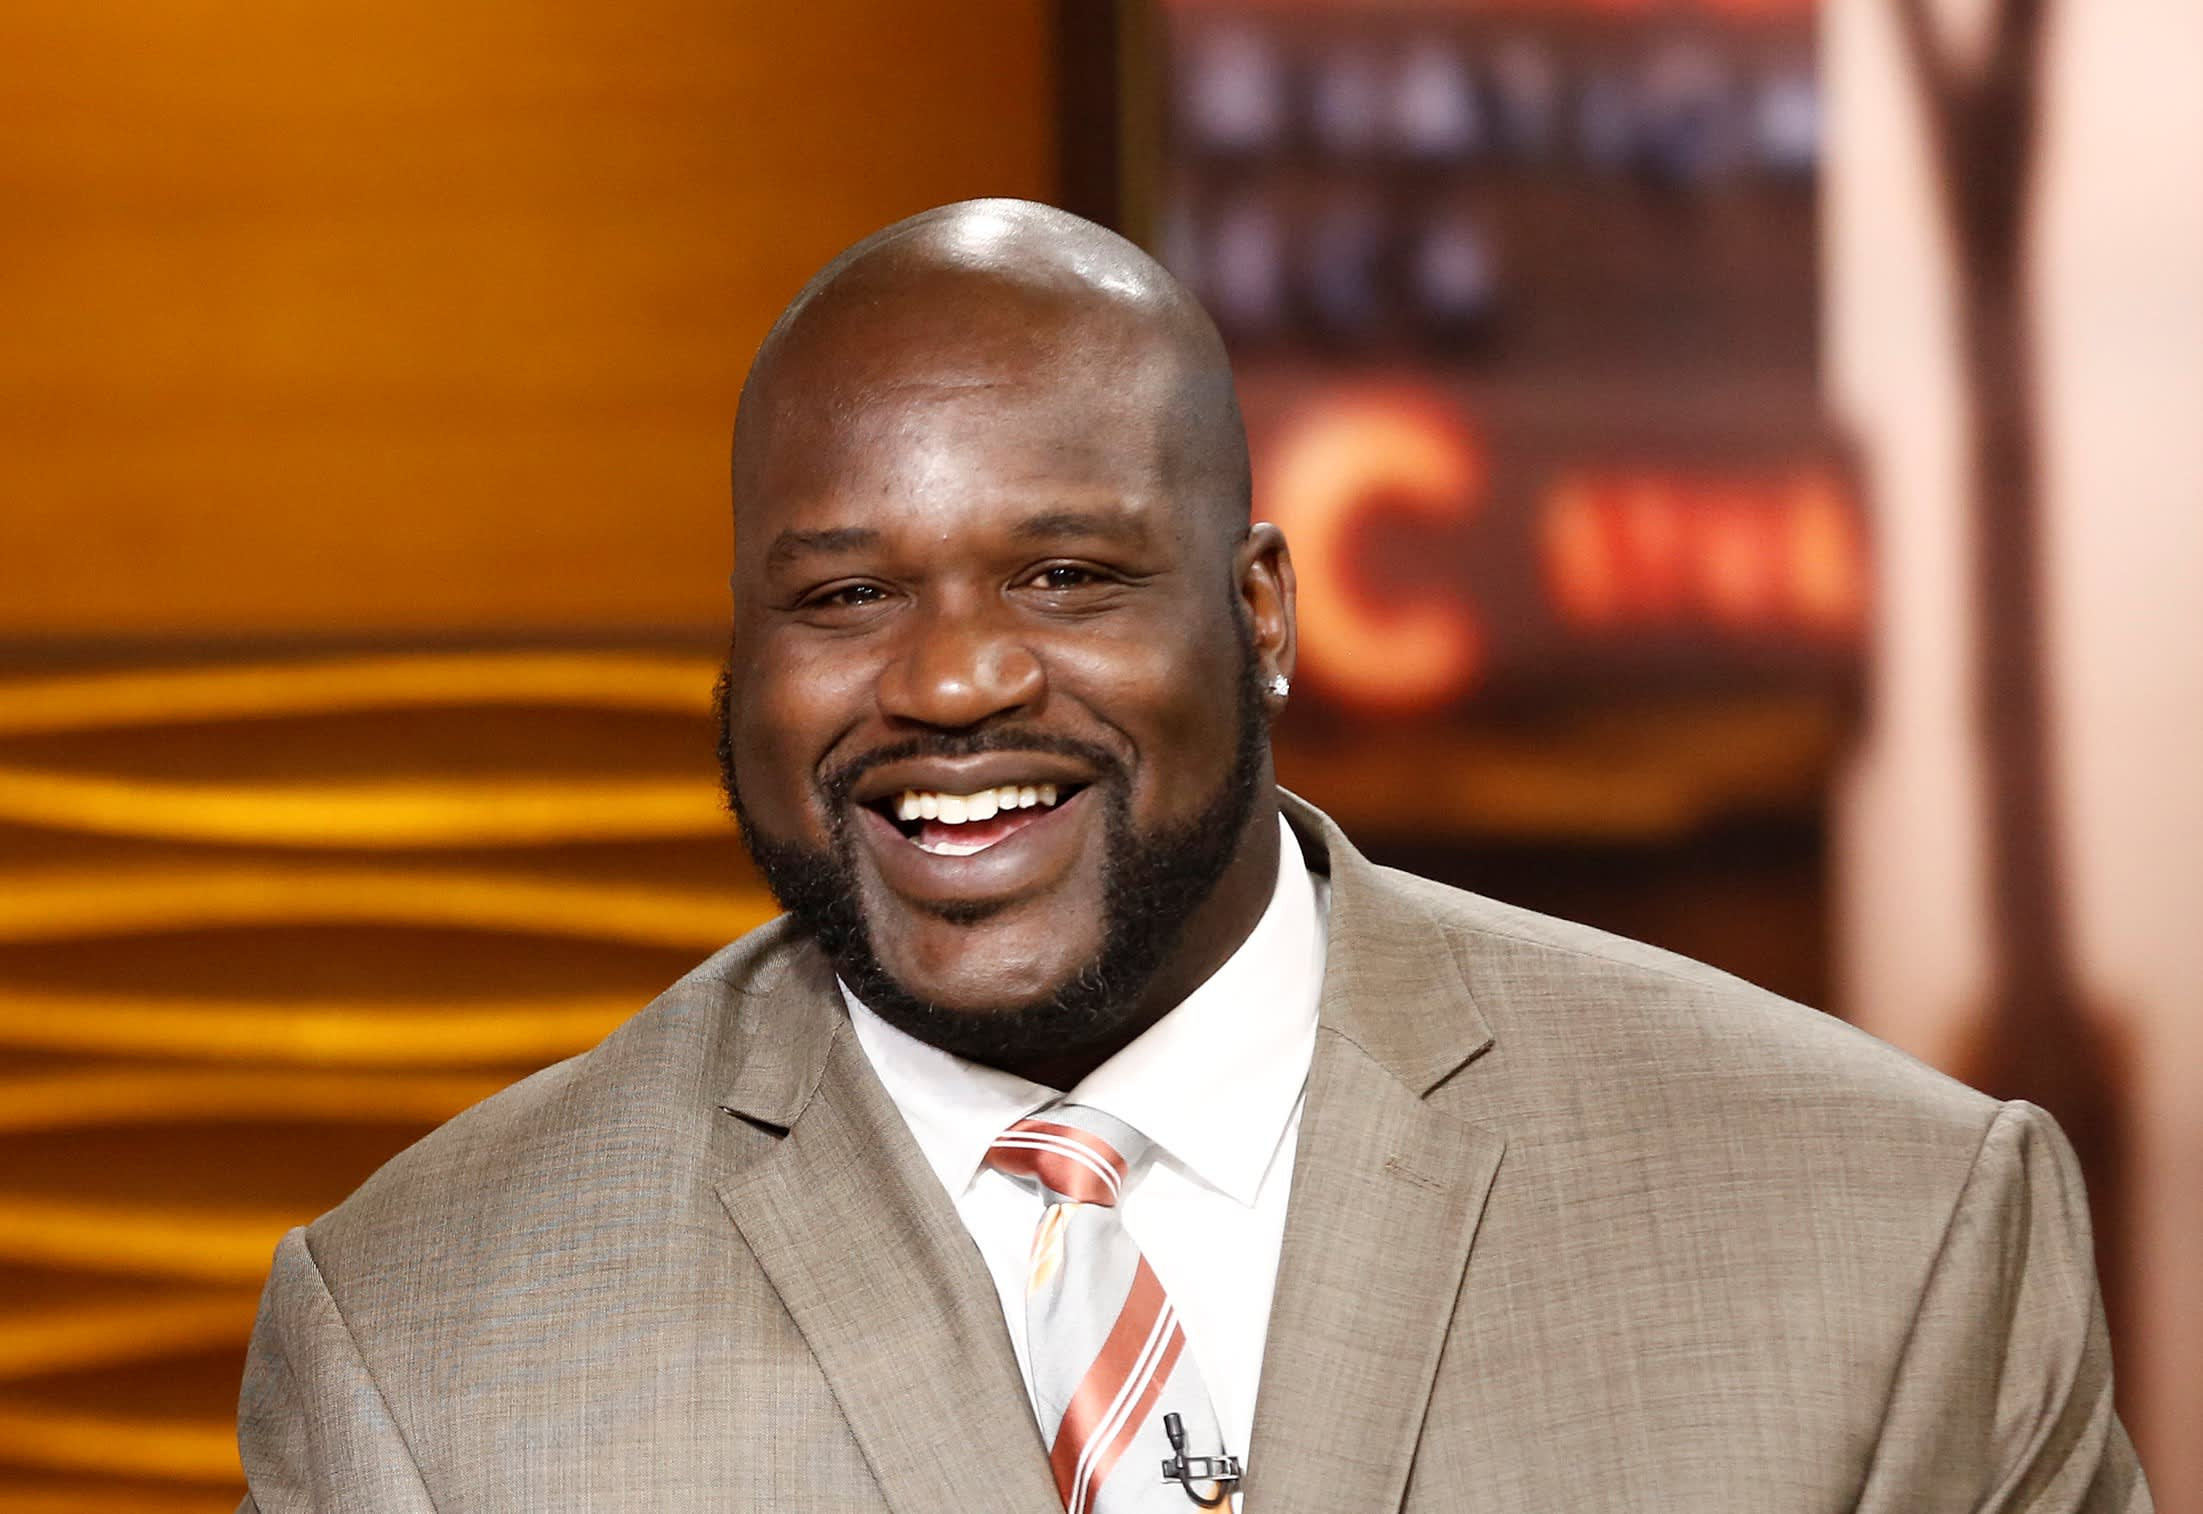 Shaq: As soon as I started investing like Jeff Bezos, 'I probably quadrupled what I'm worth'